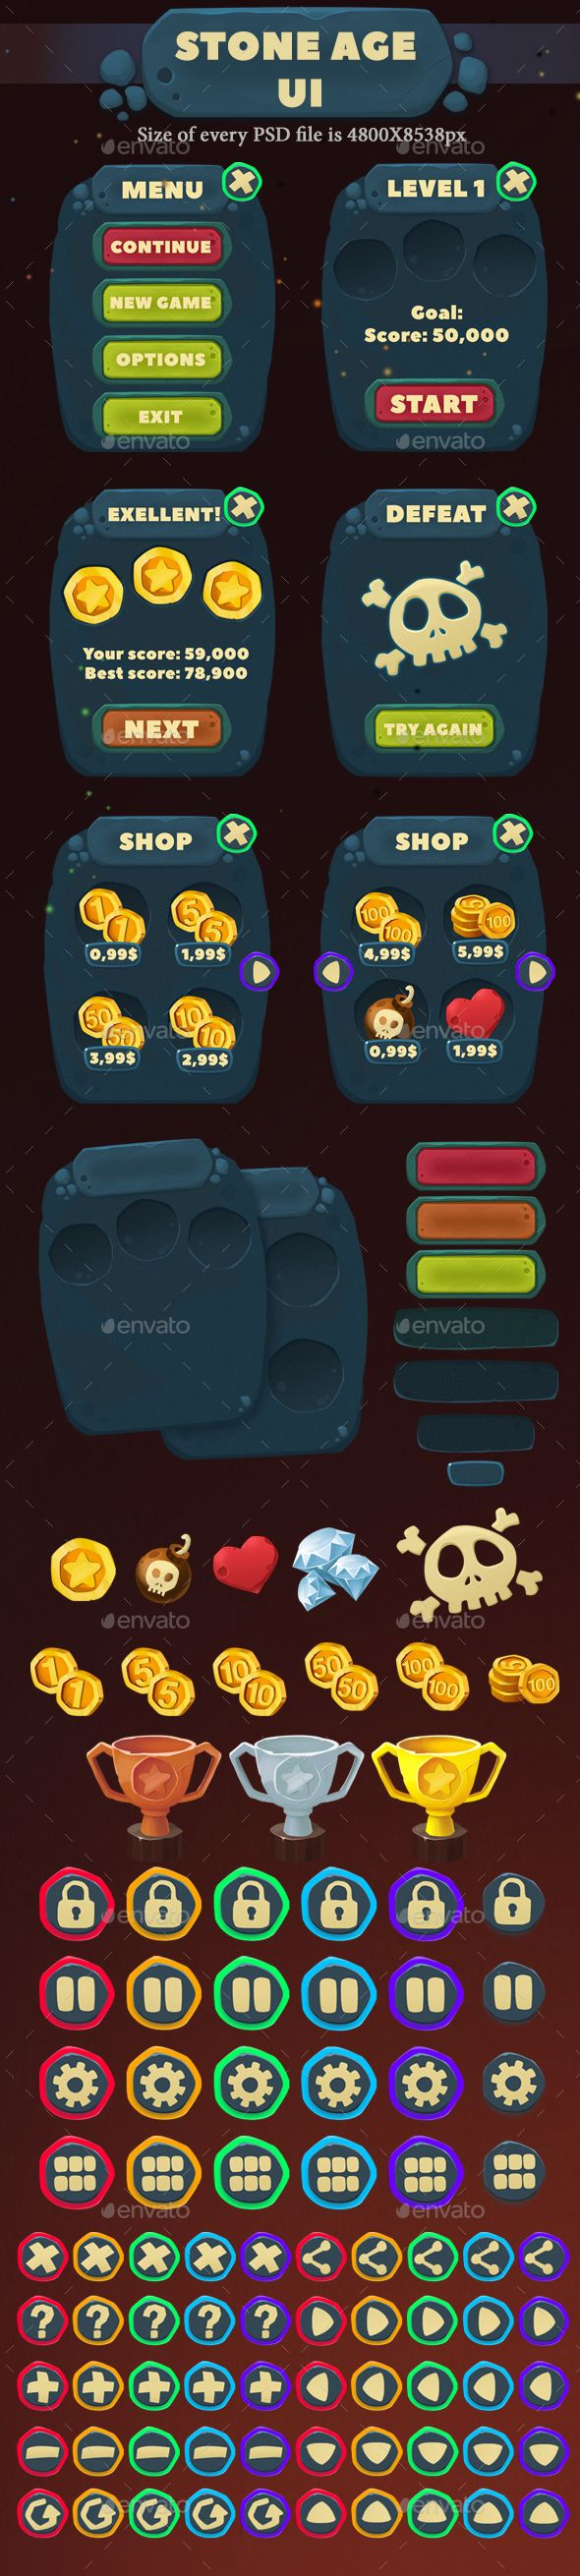 Stone Age UI - #User Interfaces #Game Assets Download here: https://graphicriver.net/item/stone-age-ui/19711037?ref=alena994